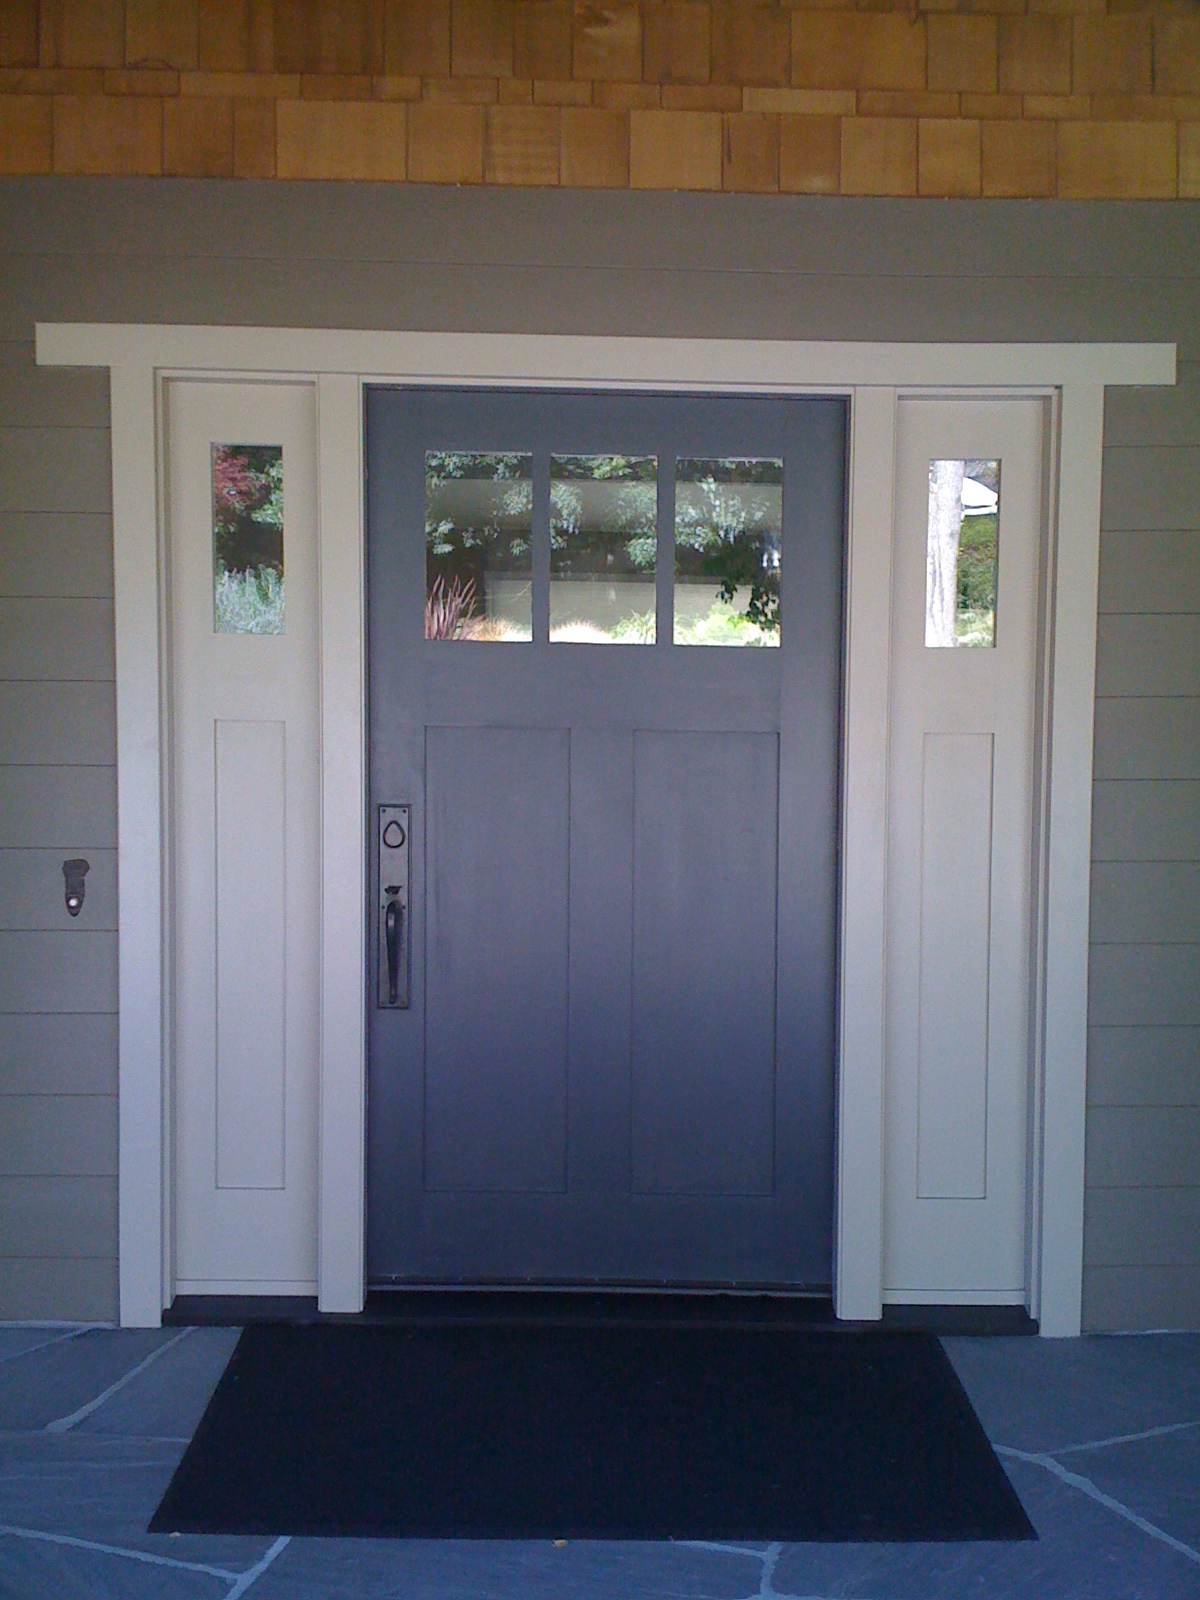 1600 #65482A Build Something!: Craftsman Style Entry pic Metal Entry Doors With Sidelights 39211200